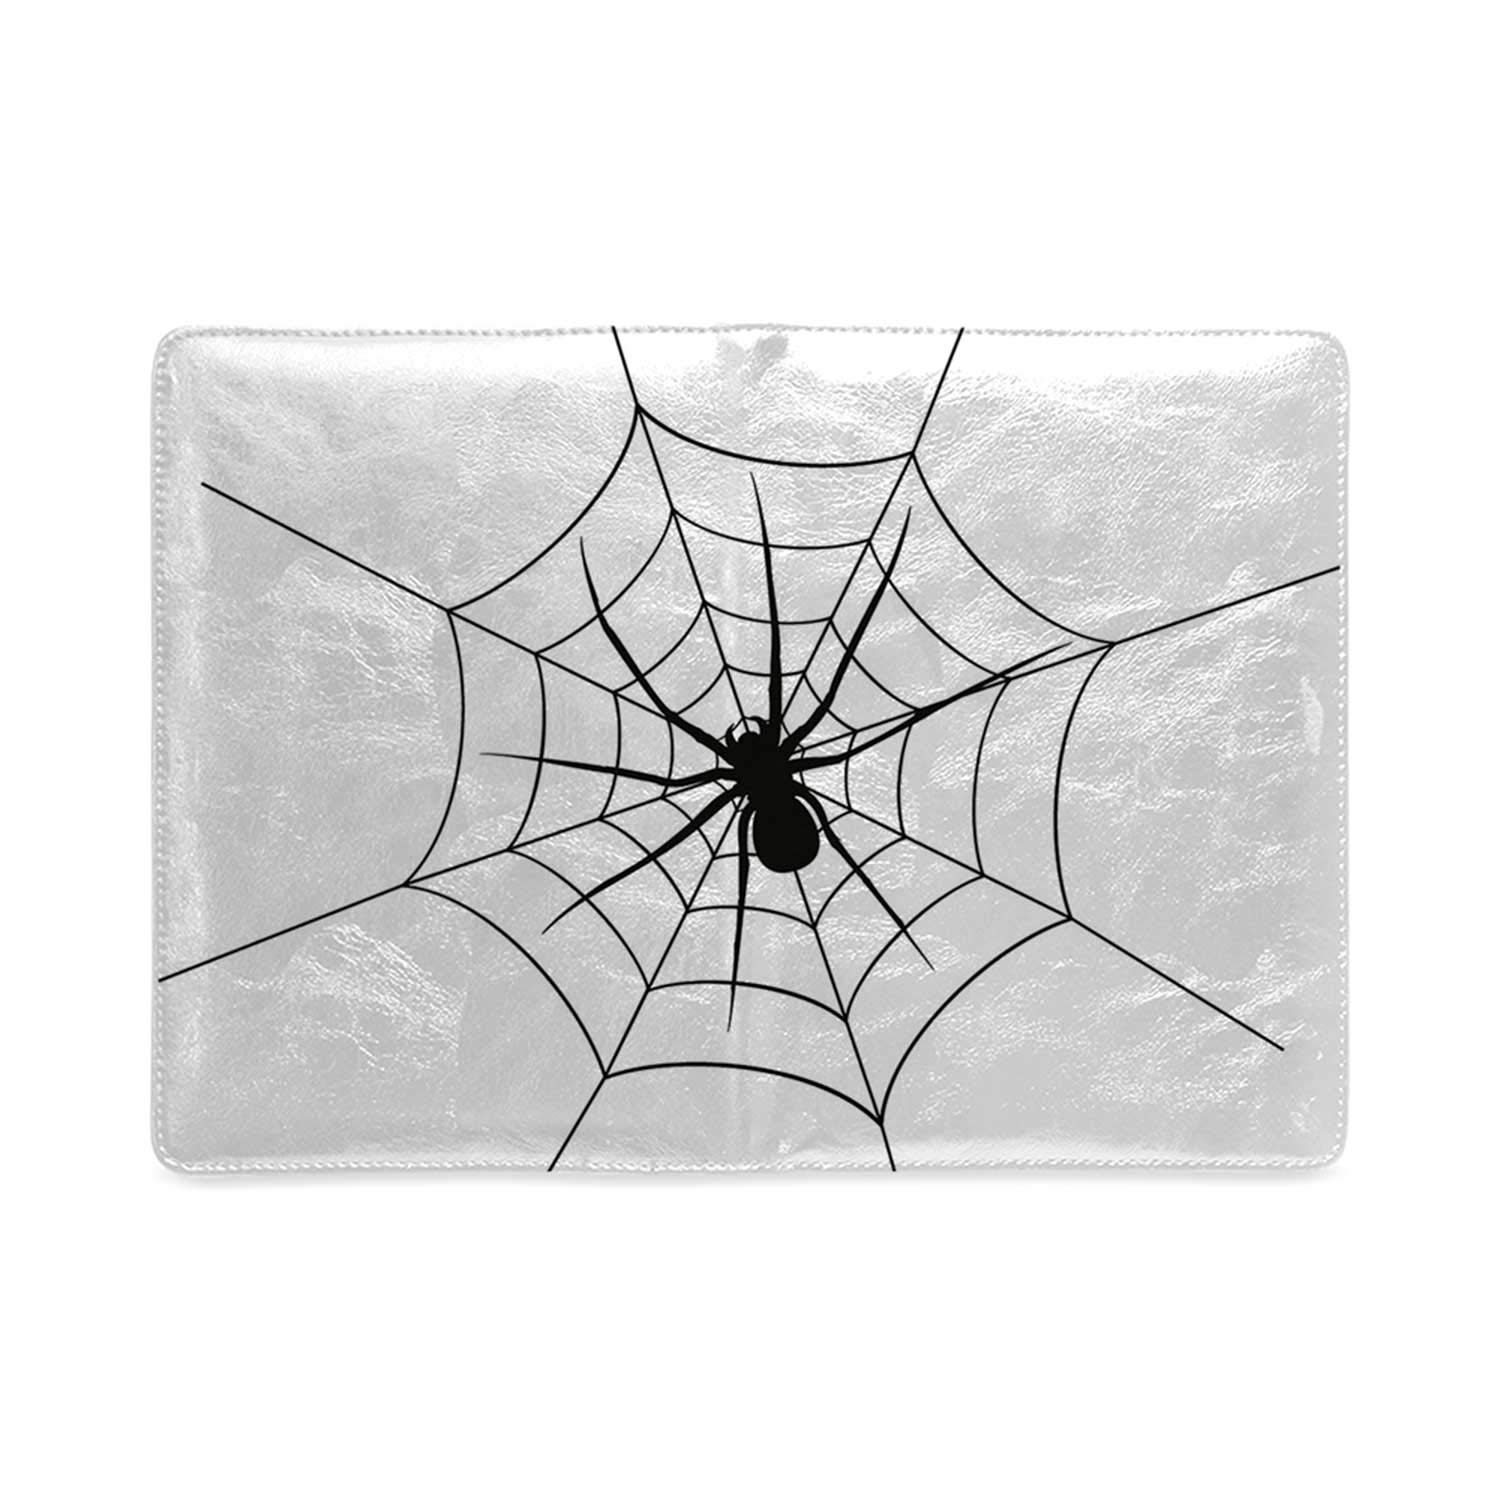 Spider Web Classic Notebook,Black Spooky Spider Weighs on a Web Creepy Crawly Organism Tangled Monochrome Opening Ceremony by YOLIYANA